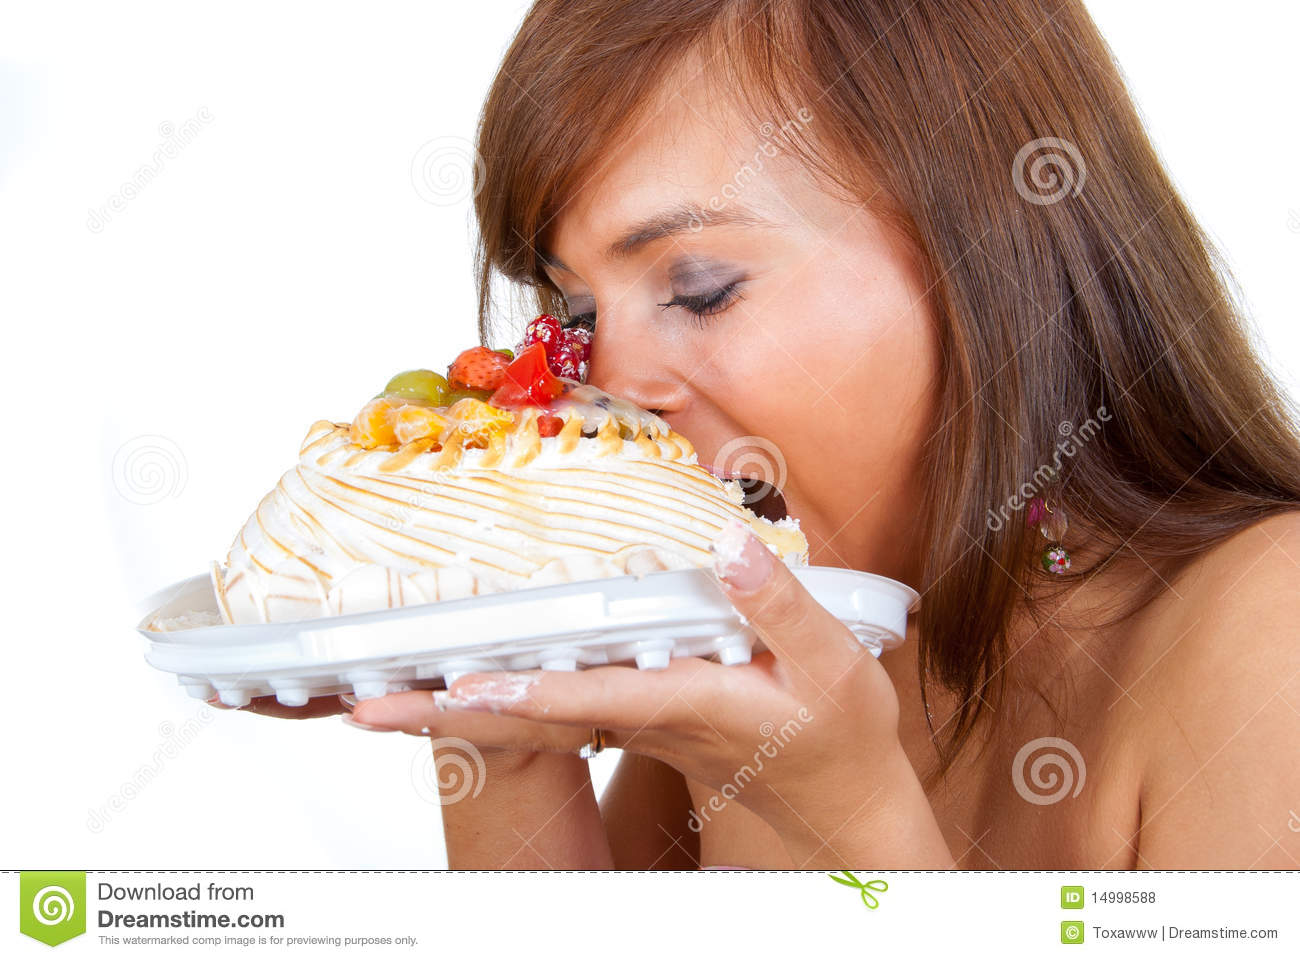 Eating Cakes Images